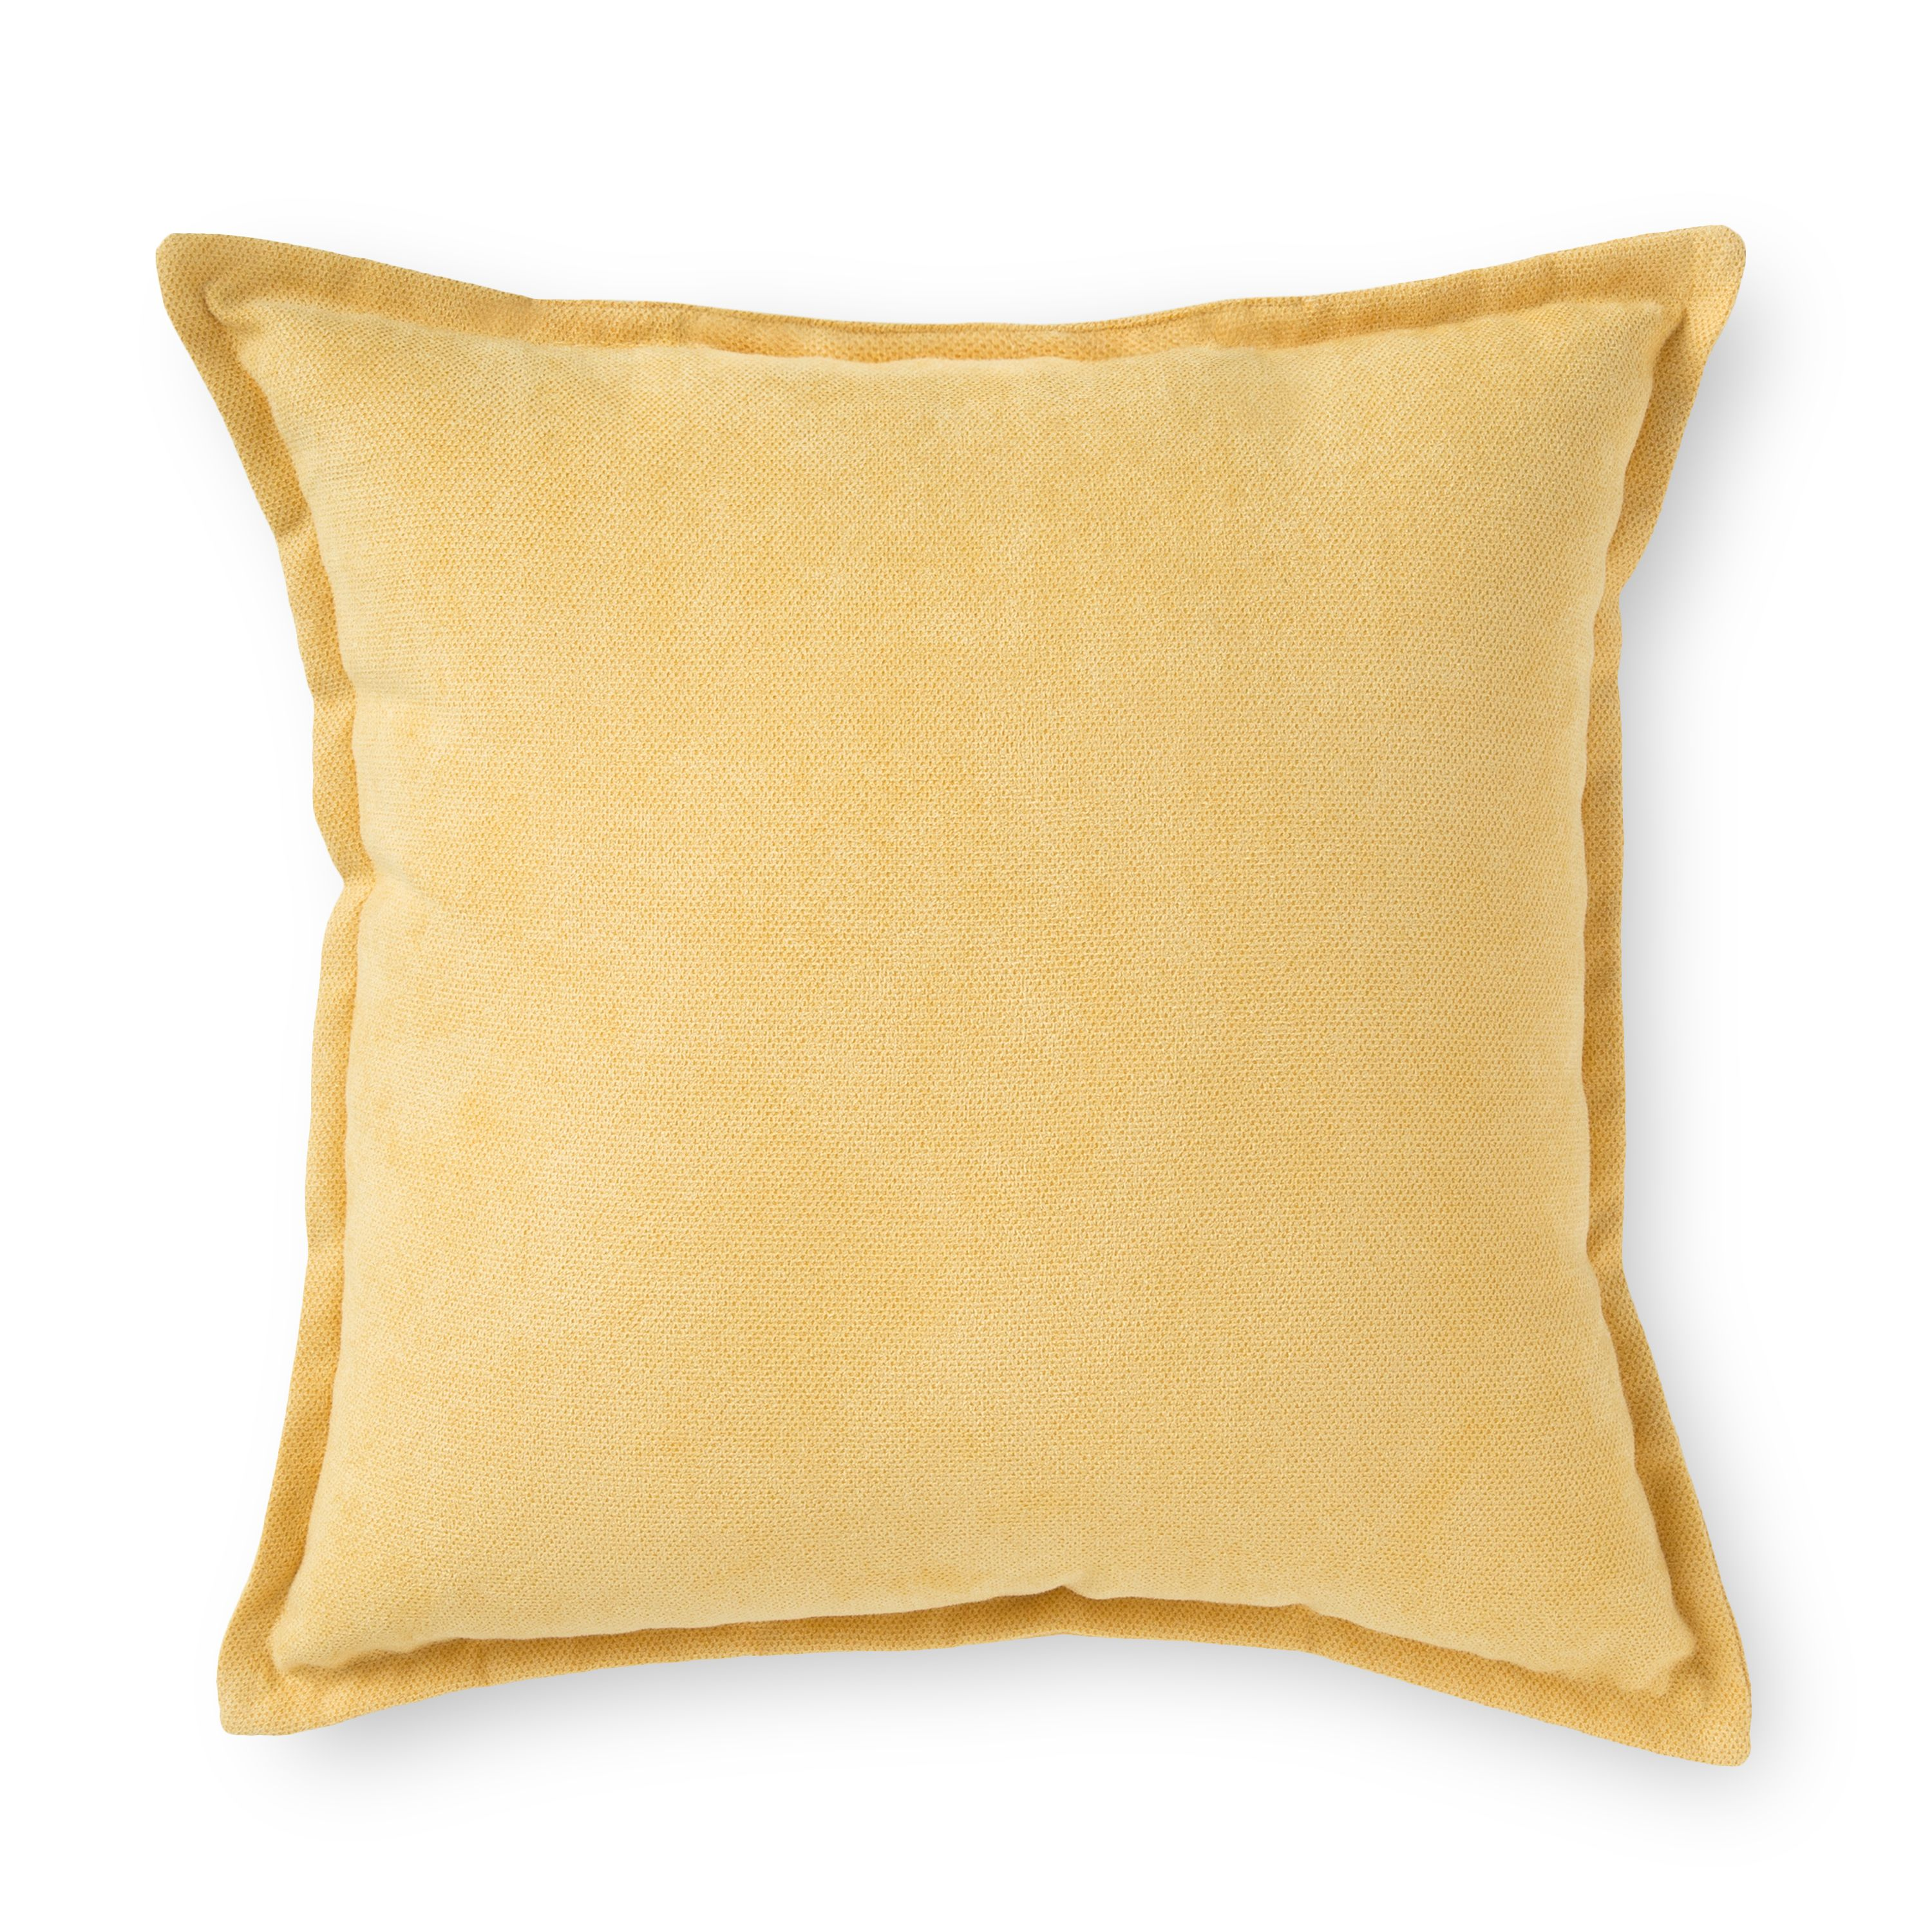 Orange Kitty of Love Faux Suede Square Pillow